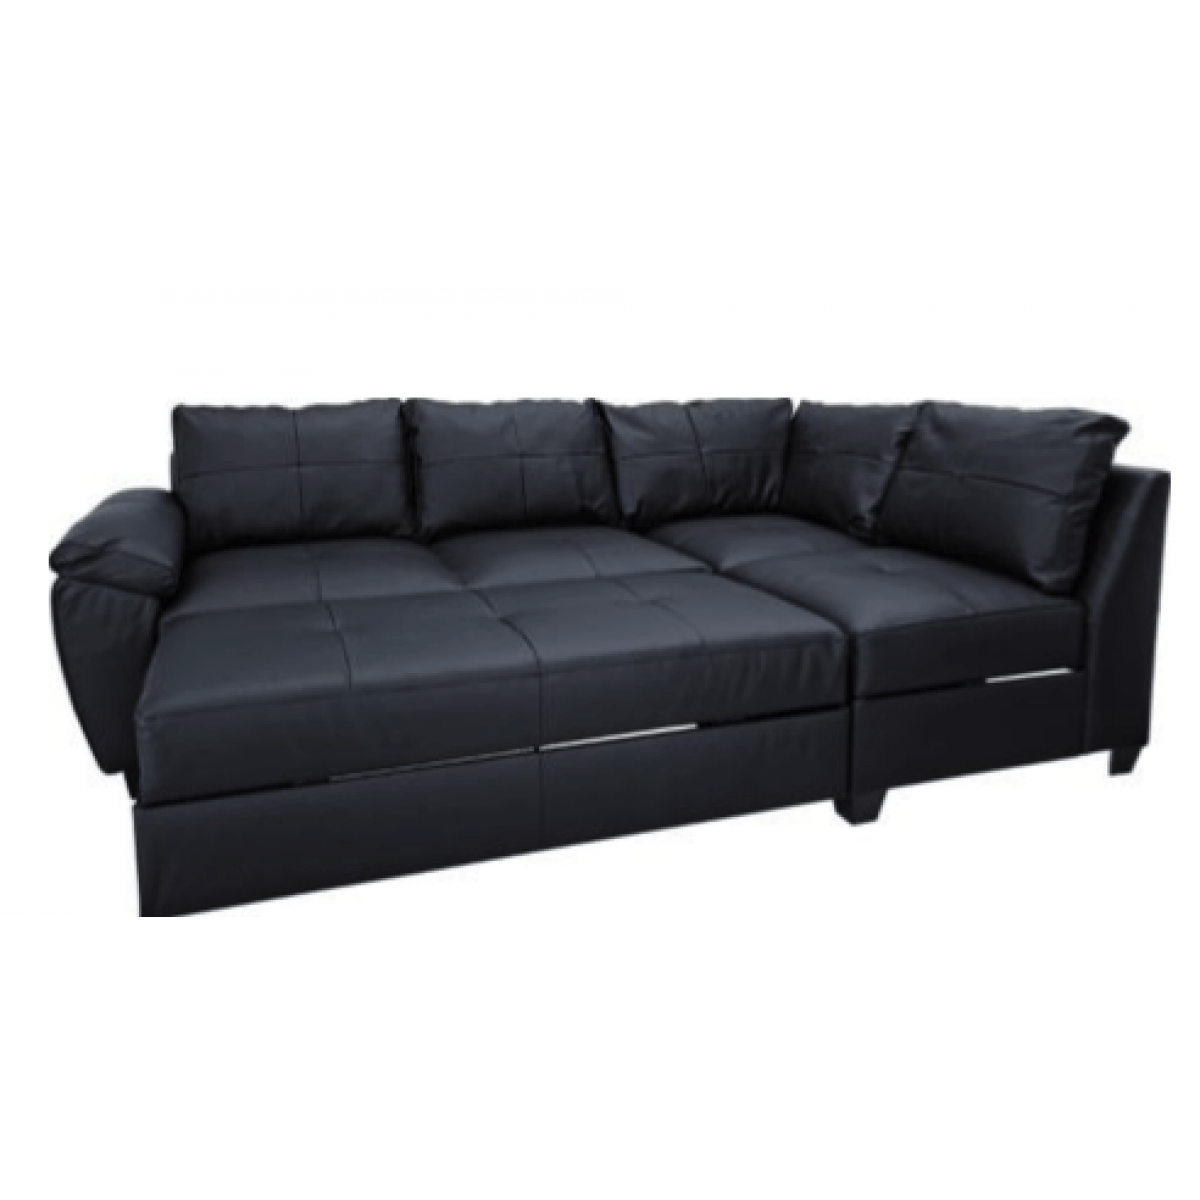 olympus black leather corner sofa bed with storage mainstay sleeper decorate your home